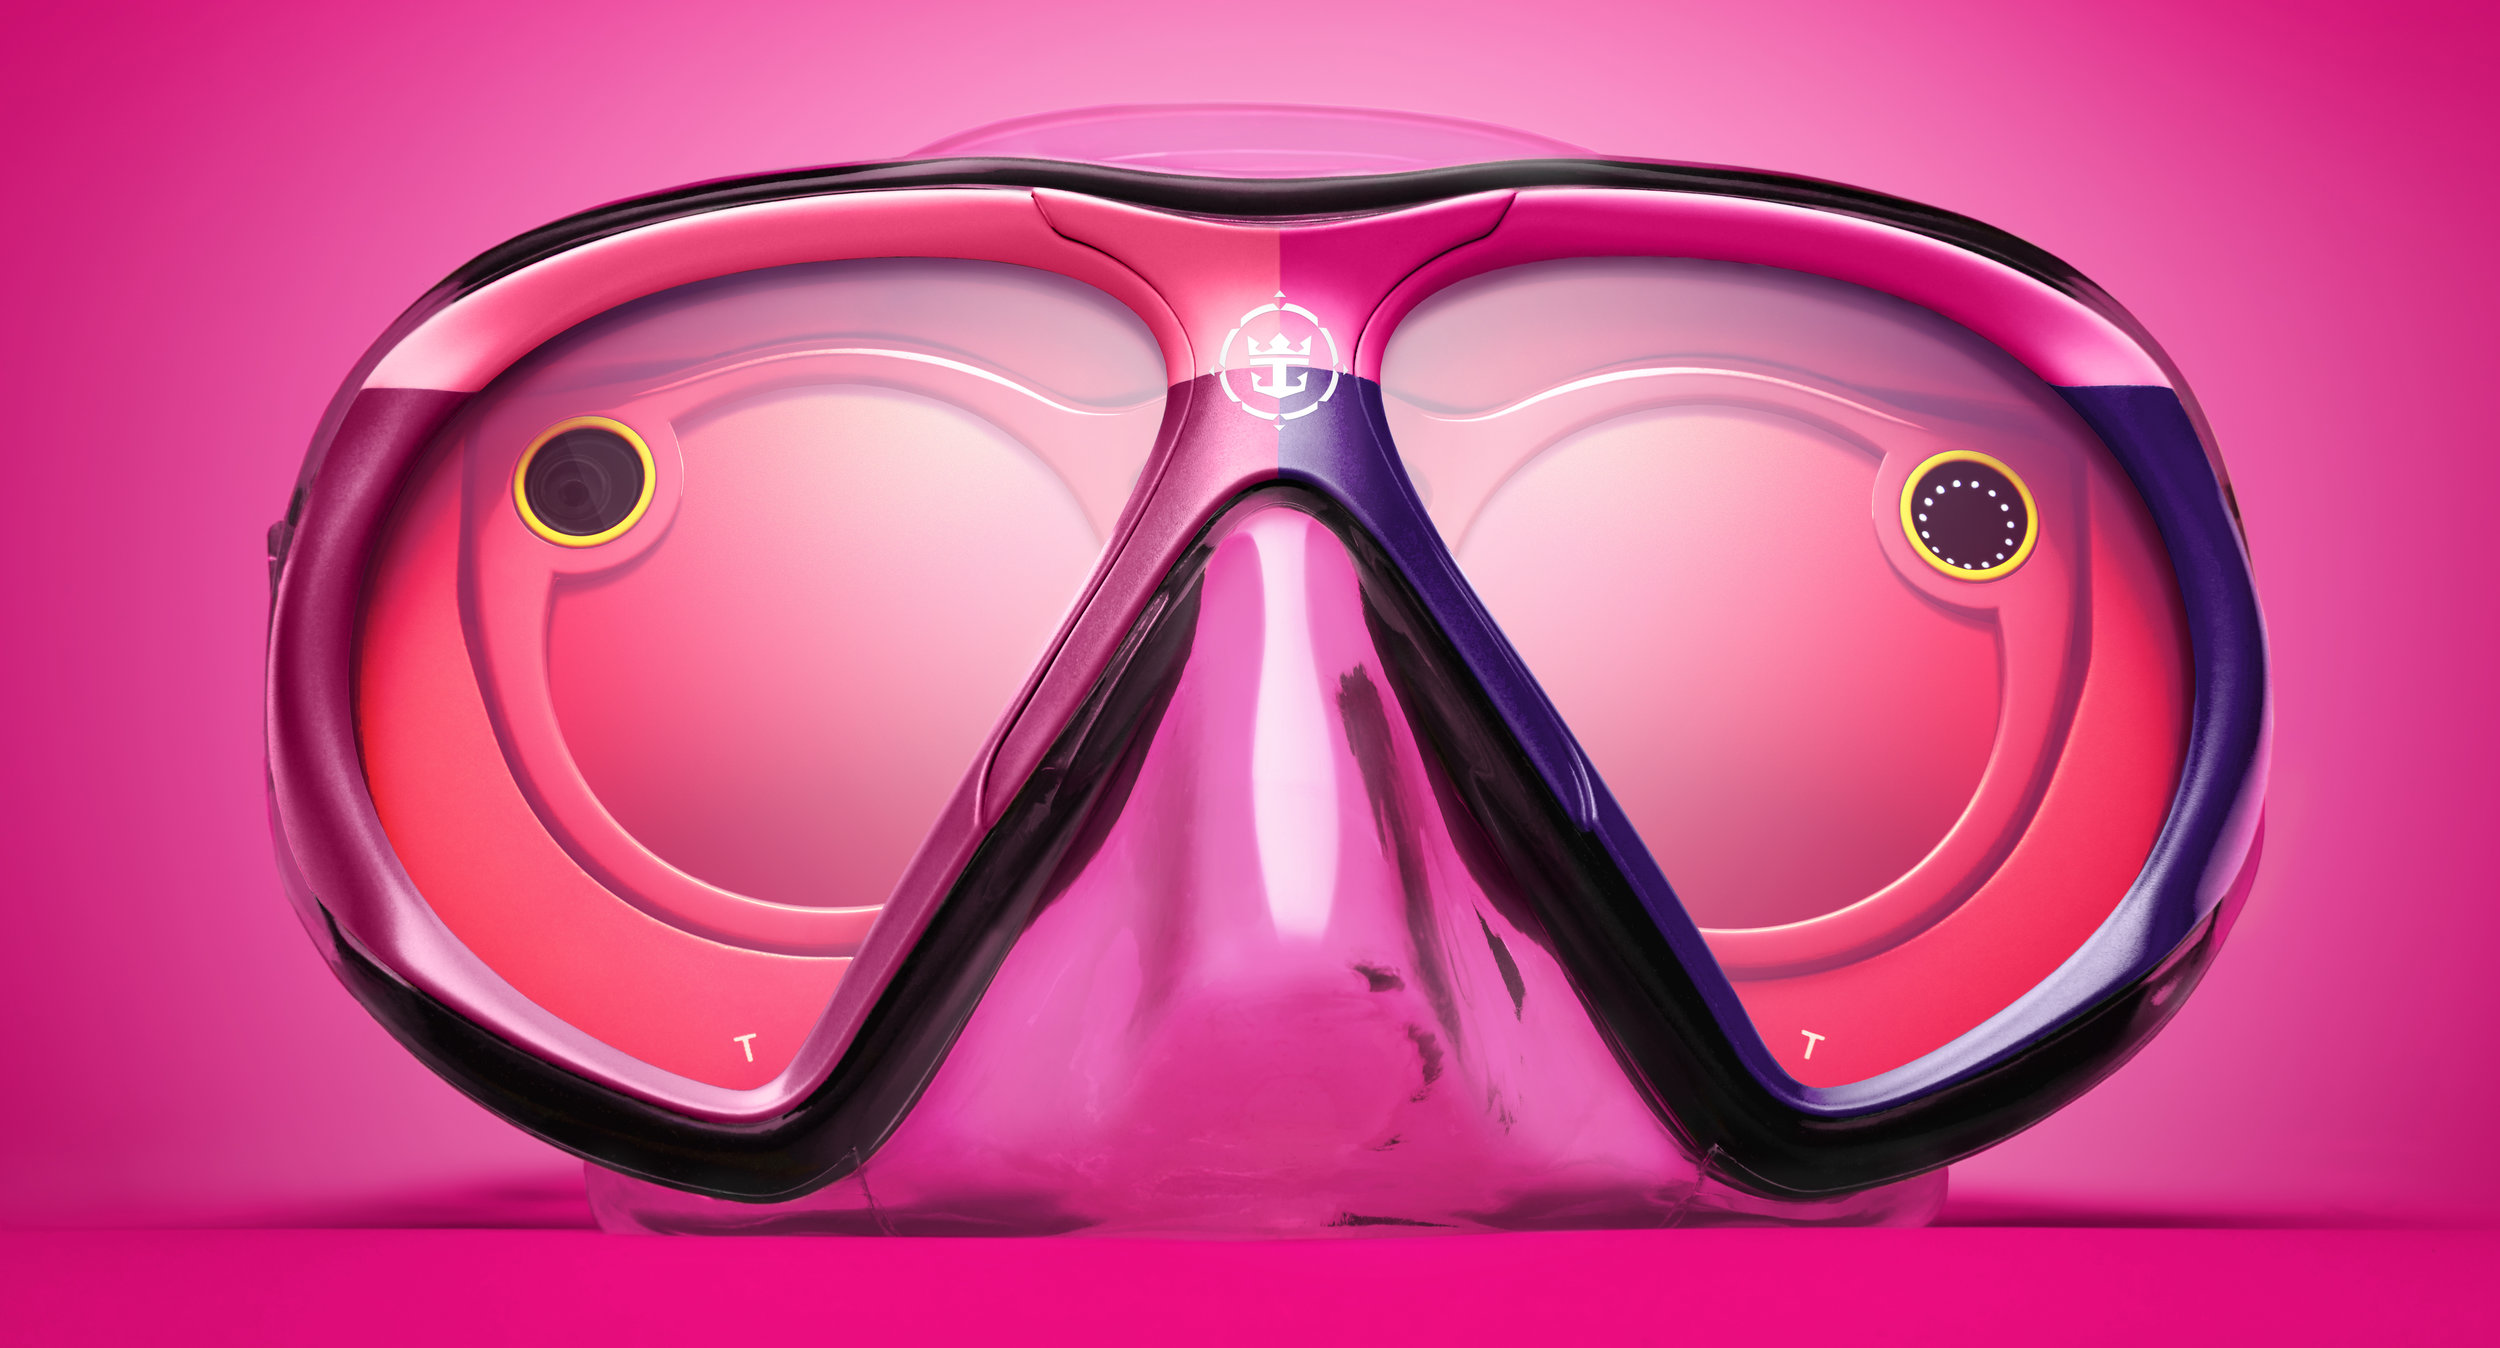 goggles_0000_RCI2-17-01994_Snapchat_Spectables_PinkGoggles_CoralSpectacles_Pink.jpg